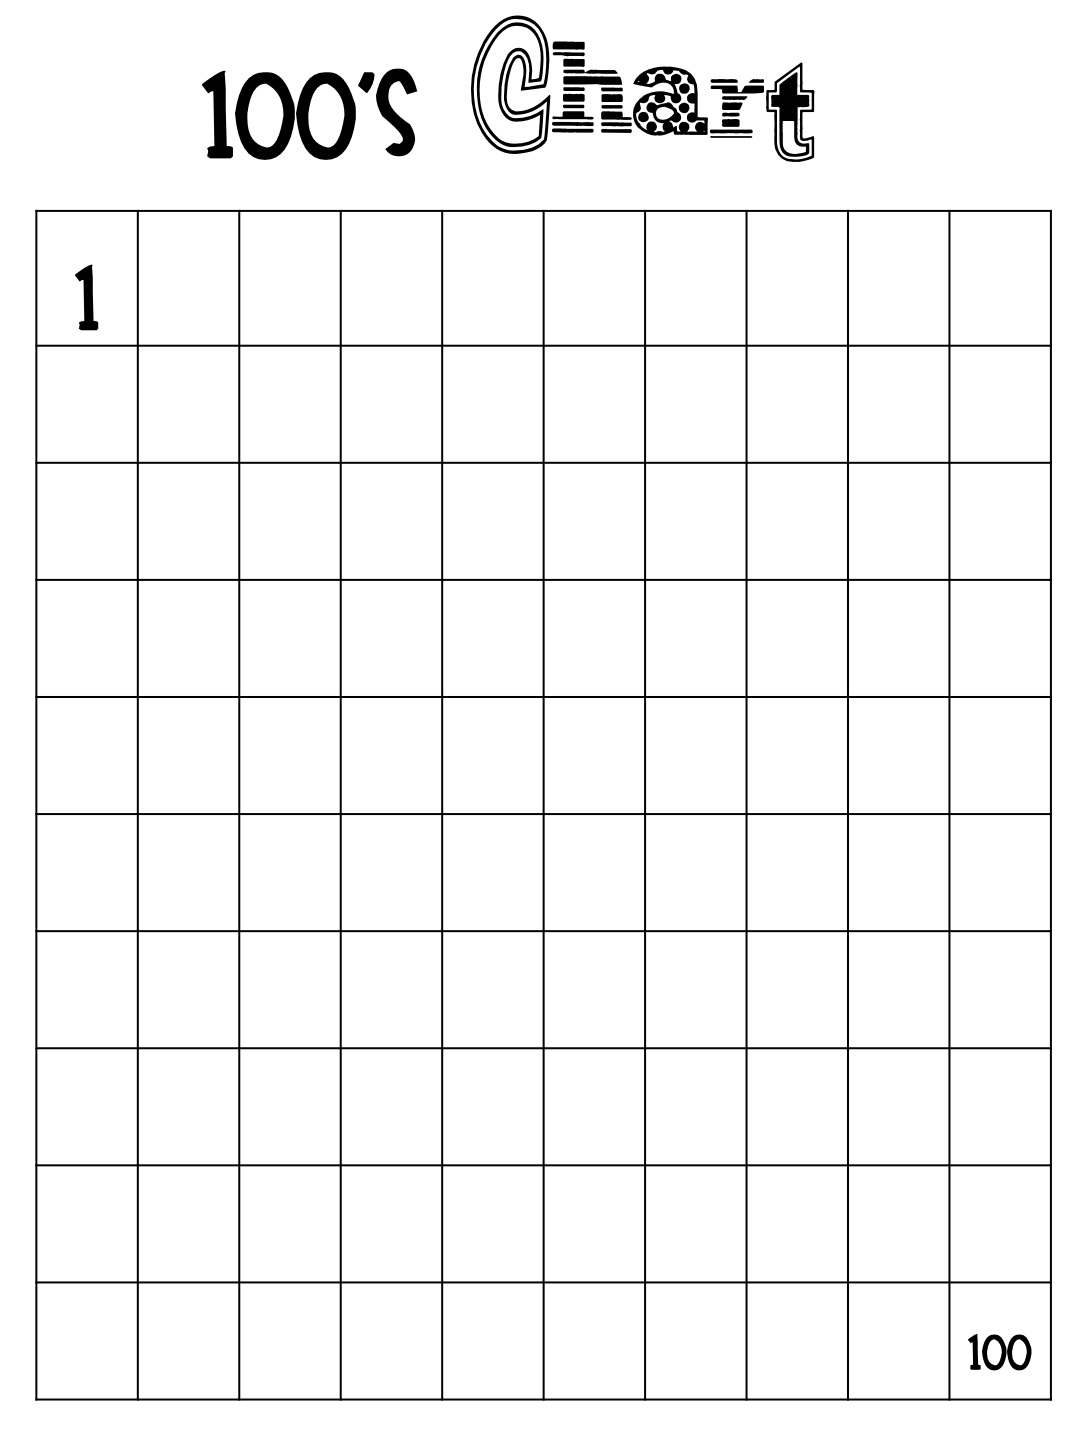 Gallery images and information: Blank Numbered Grid